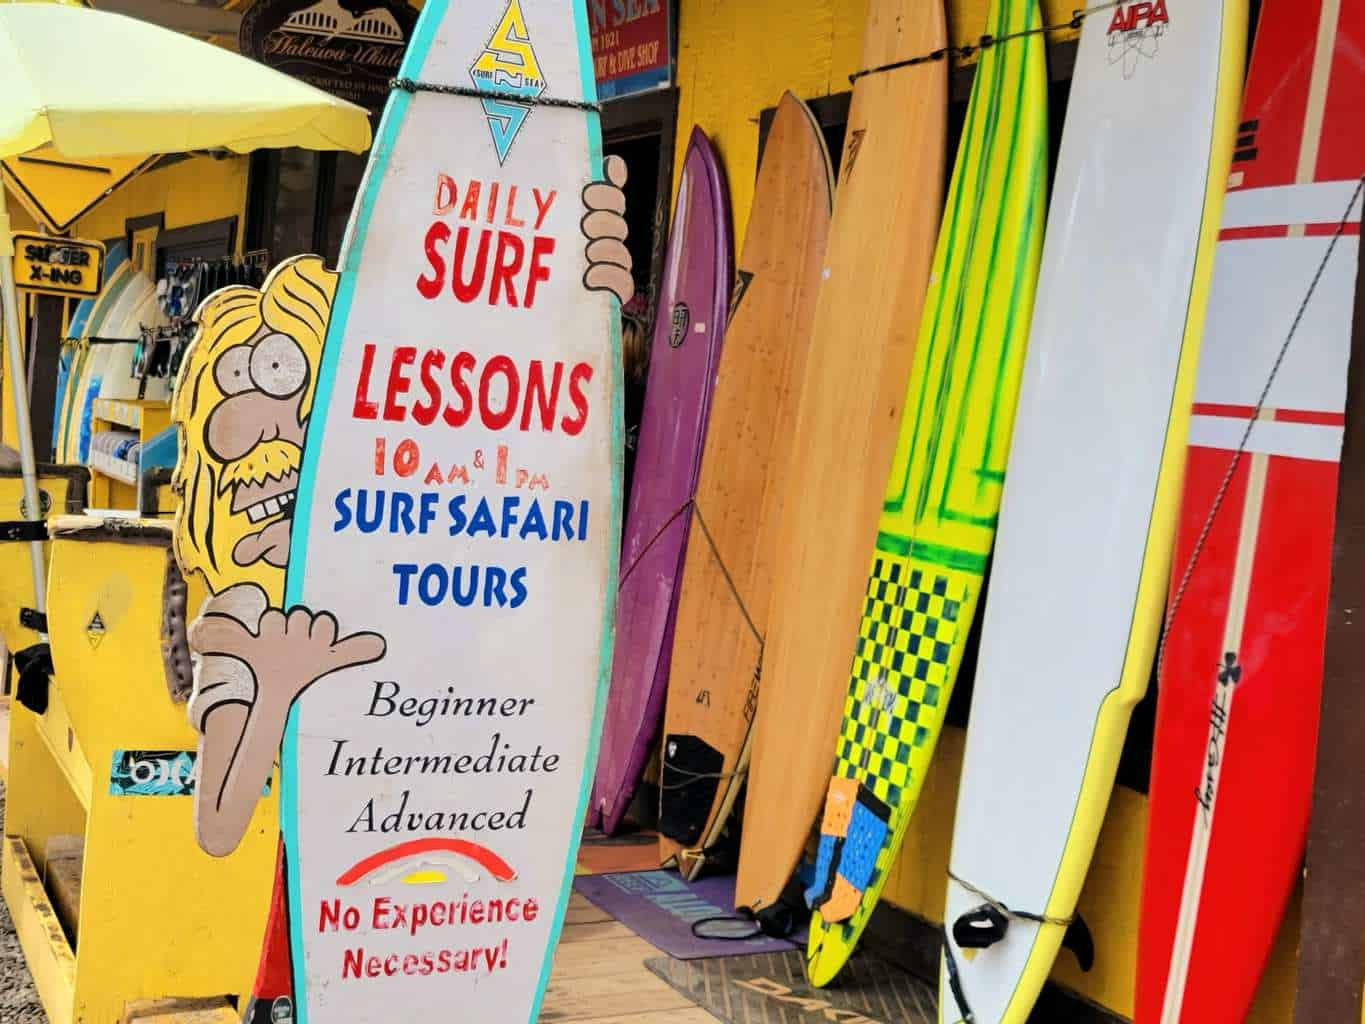 Welcome to our Surf Lesson!